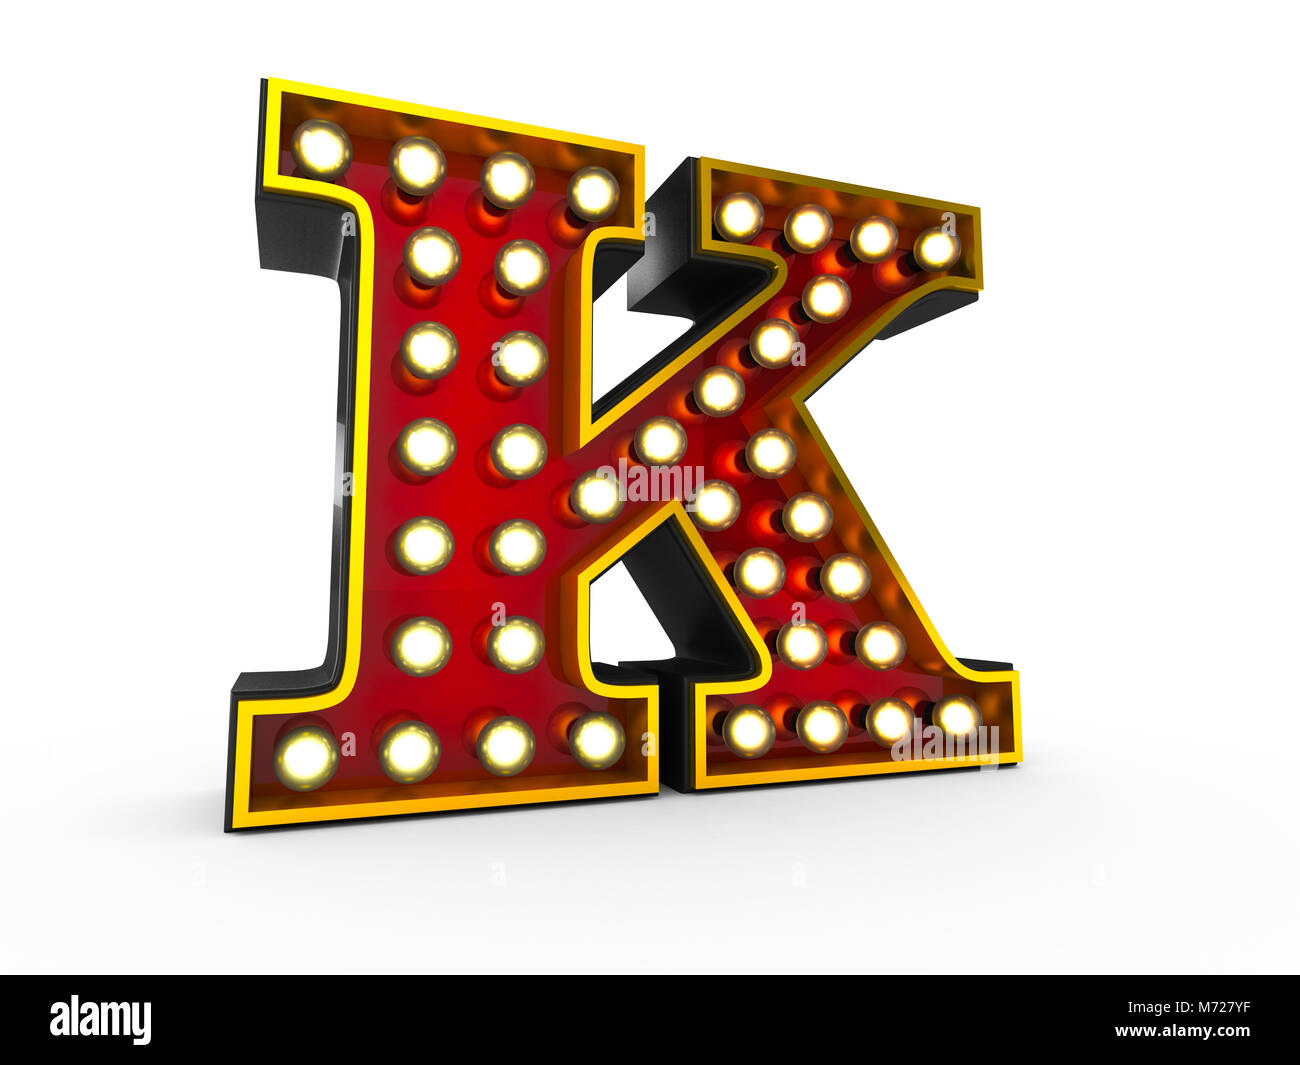 High quality 3D illustration of the letter K in Broadway style with light bulbs illuminating it over white background - Stock Image